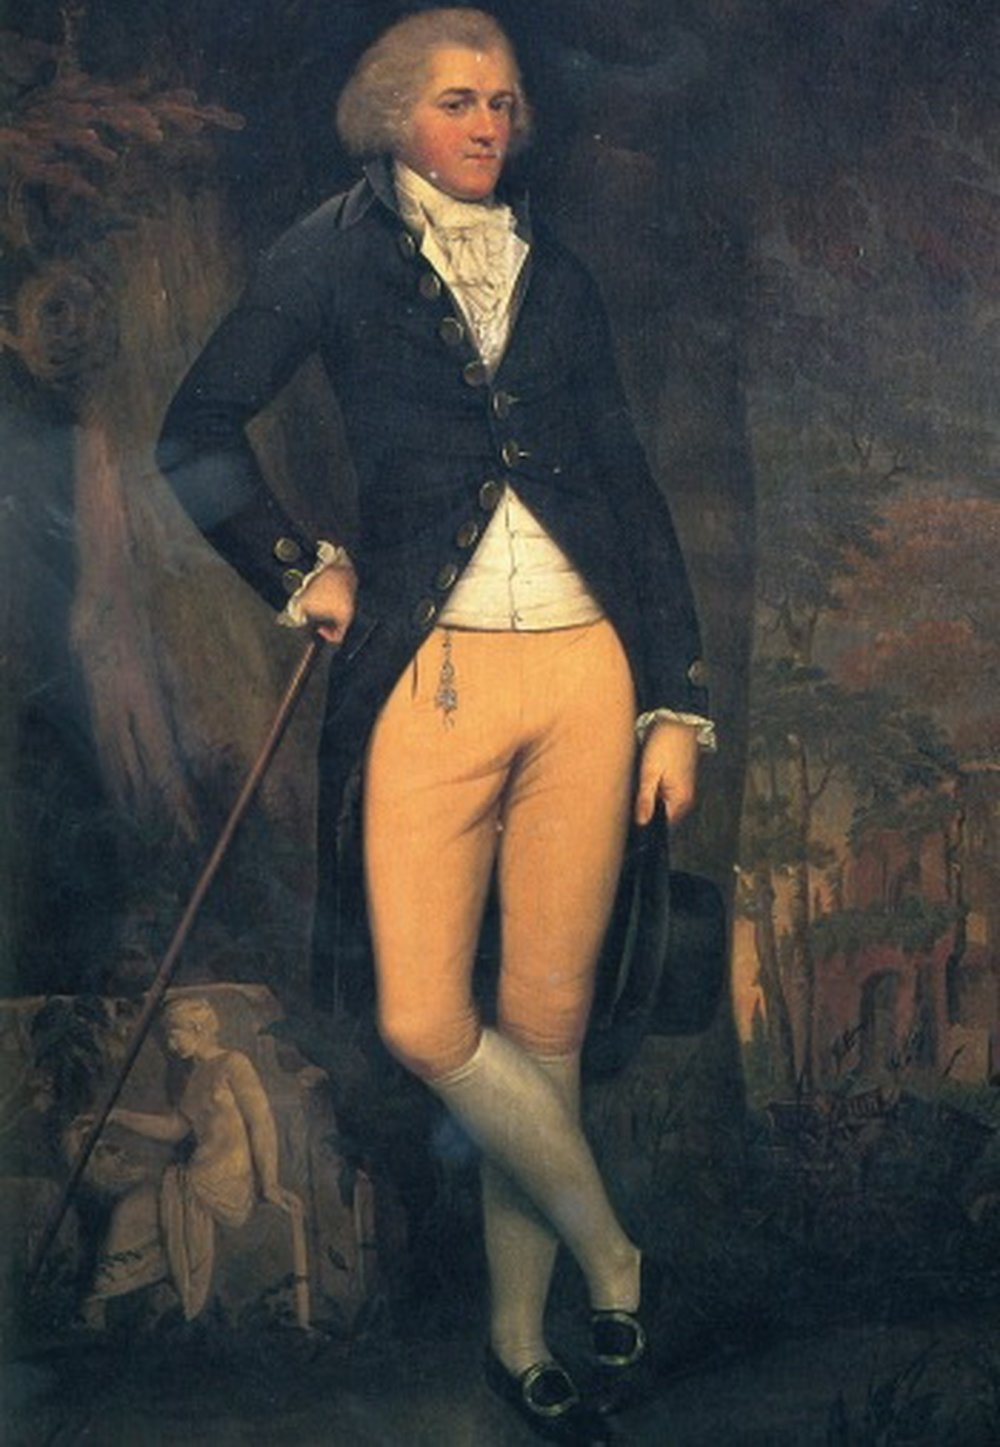 Edward Austen Knight.  Credit: Caroline Jane Knight.